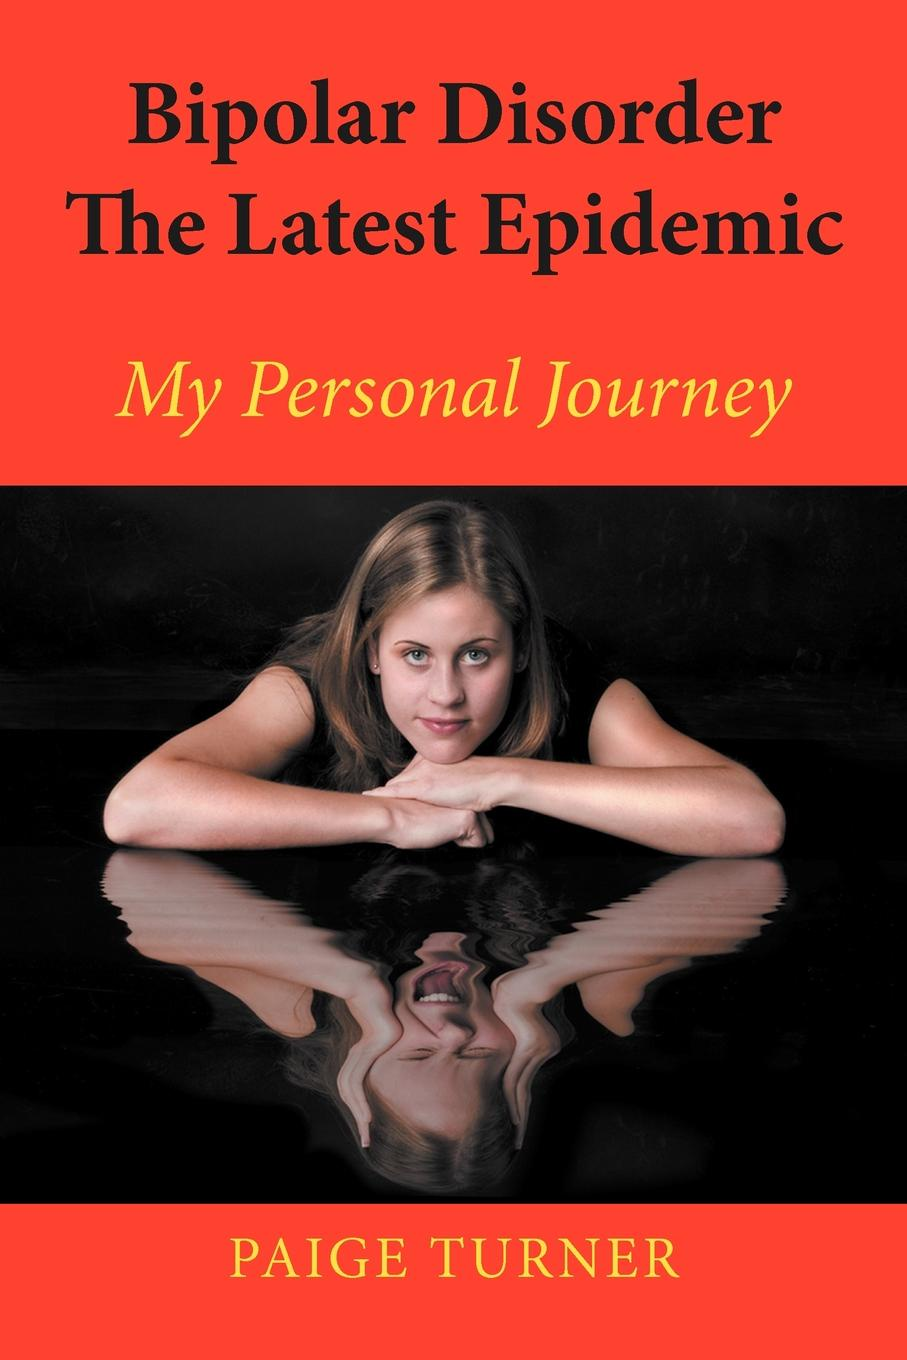 Paige Turner Bipolar Disorder the Latest Epidemic. My Personal Journey